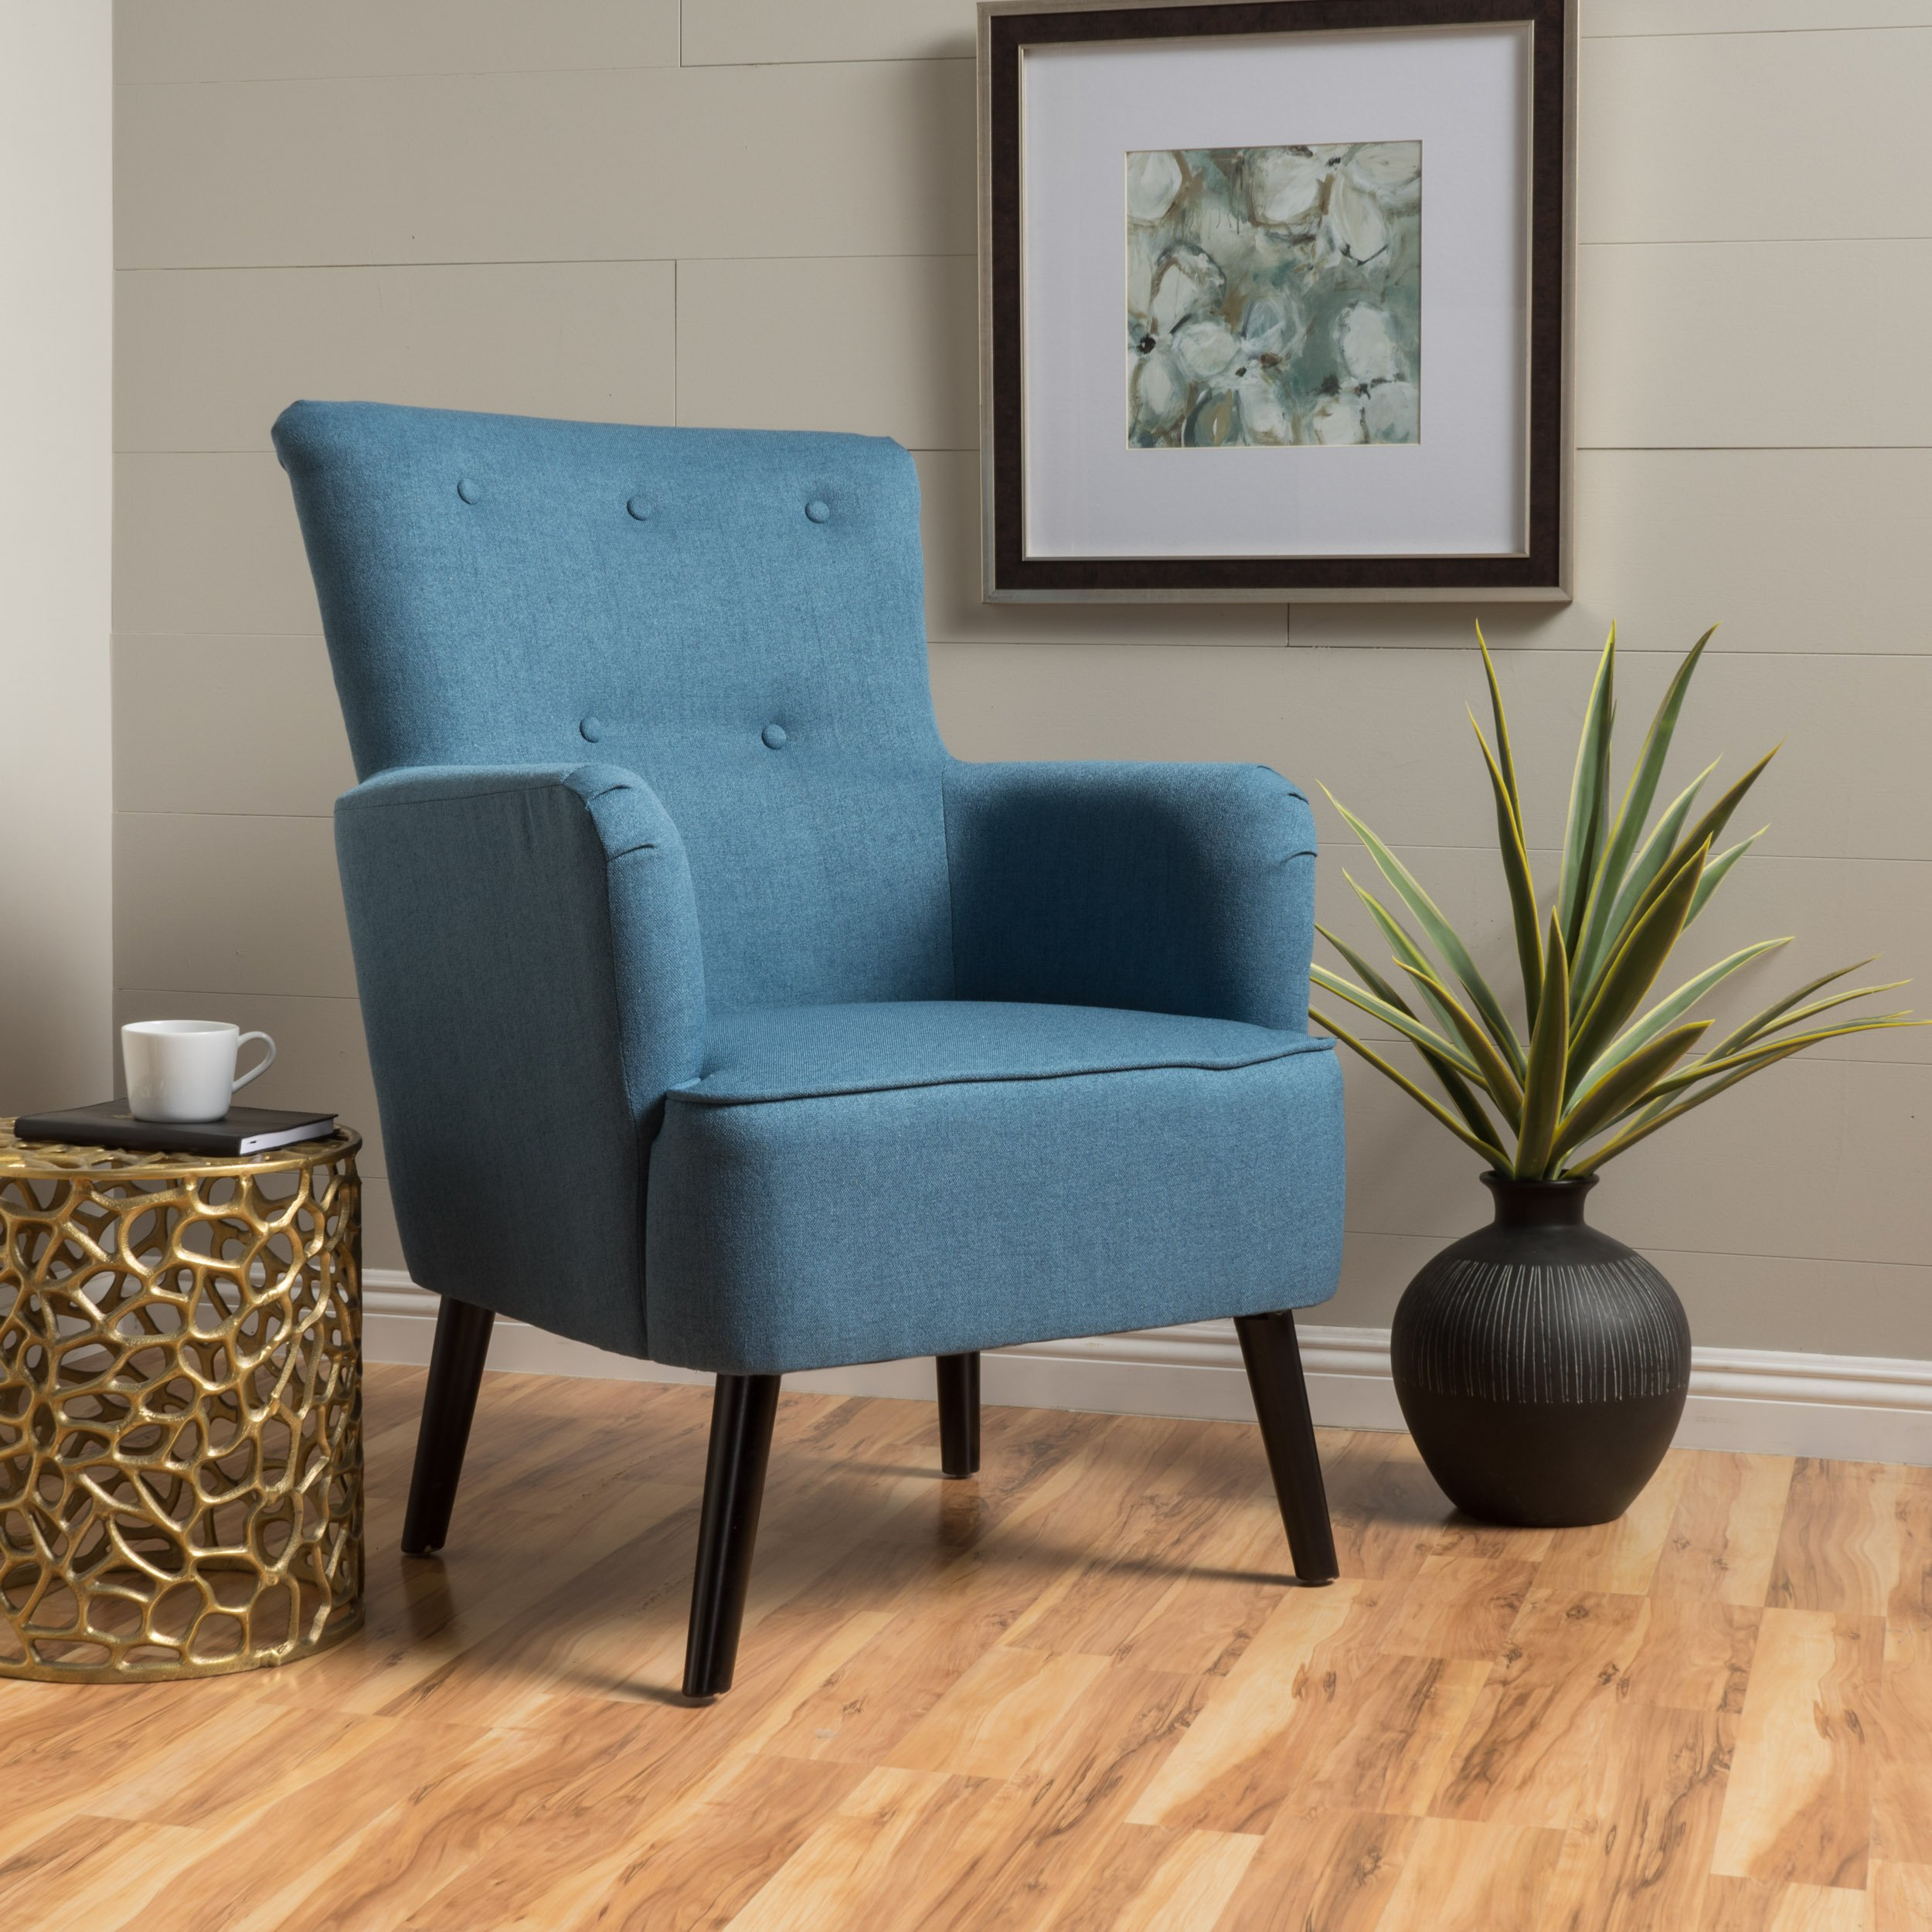 Fabulous Details About Wood Fabric Upholstered Mid Century Modern Tufted Accent Arm Chair Blue Living Caraccident5 Cool Chair Designs And Ideas Caraccident5Info